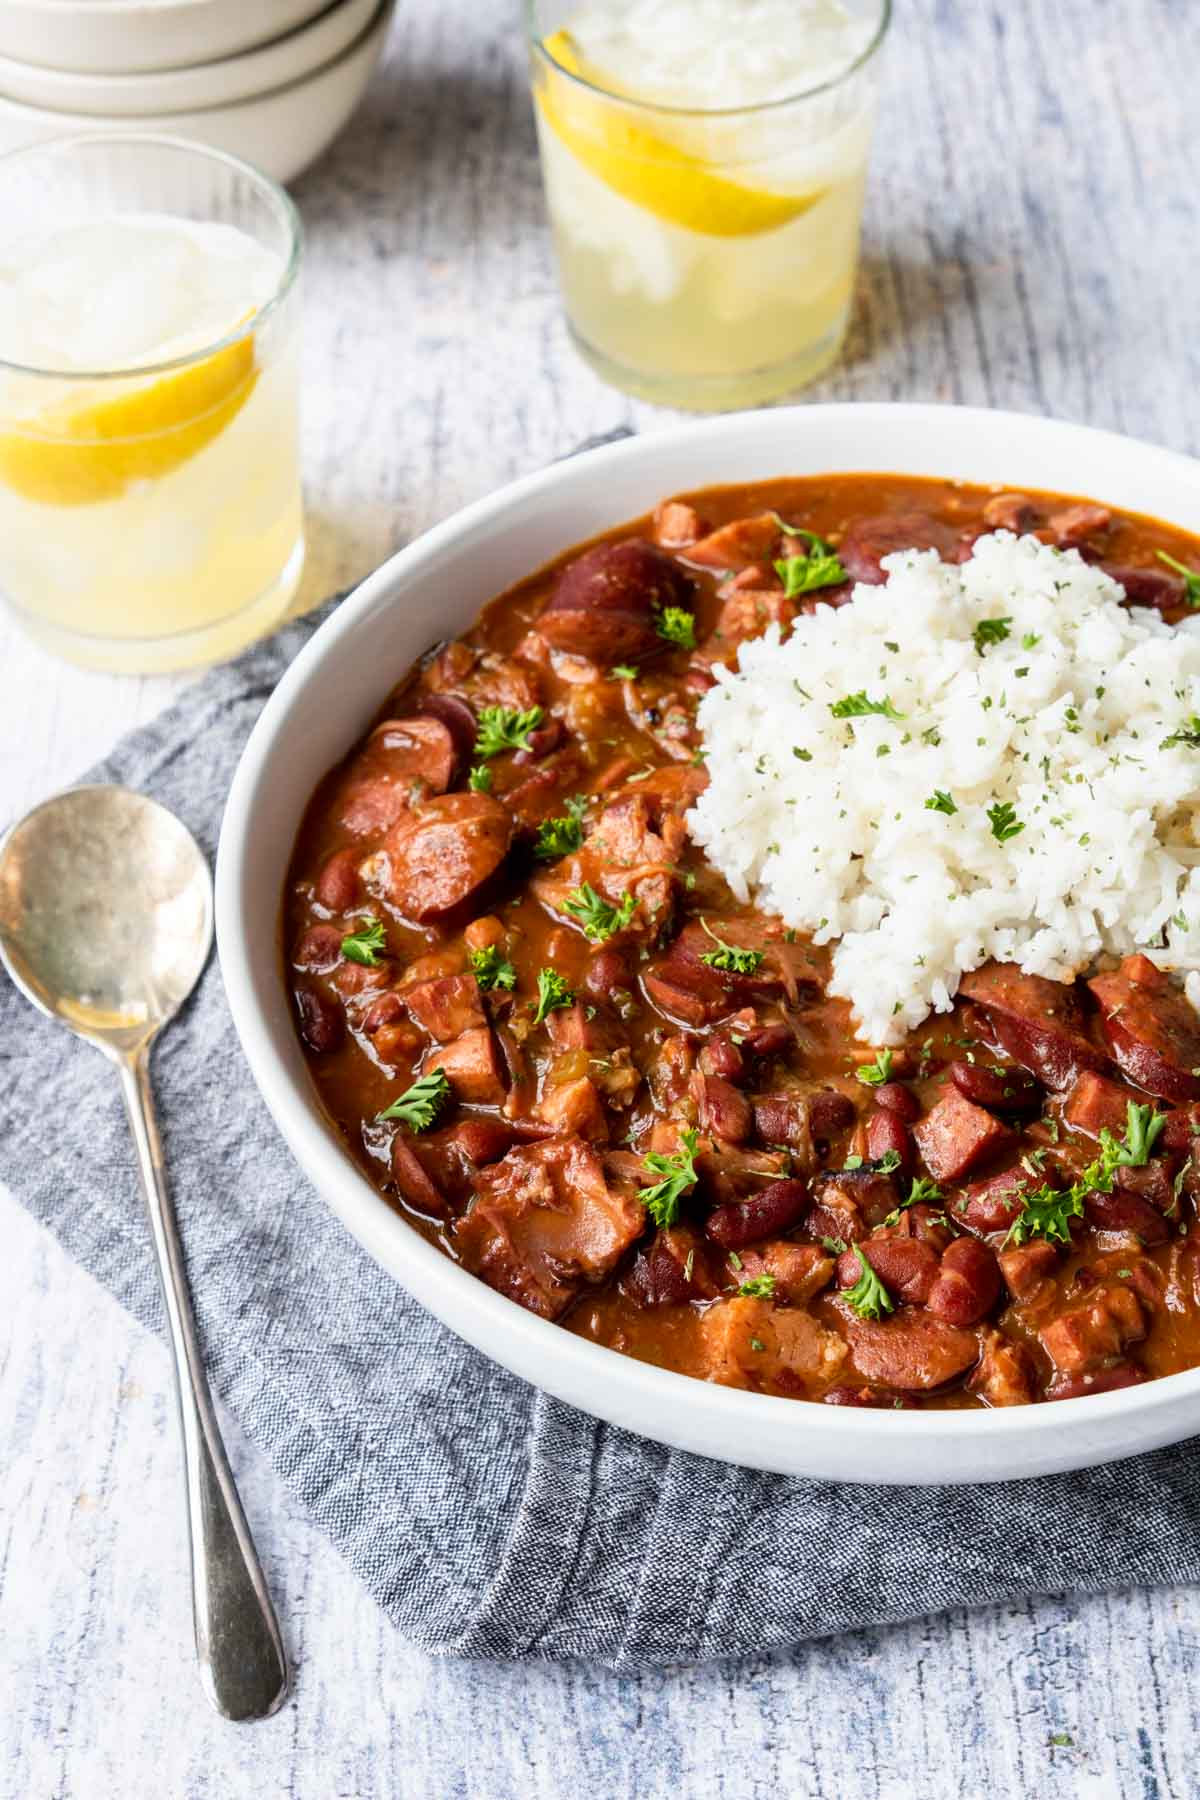 a large bowl of red beans and rice and two glasses of lemonade